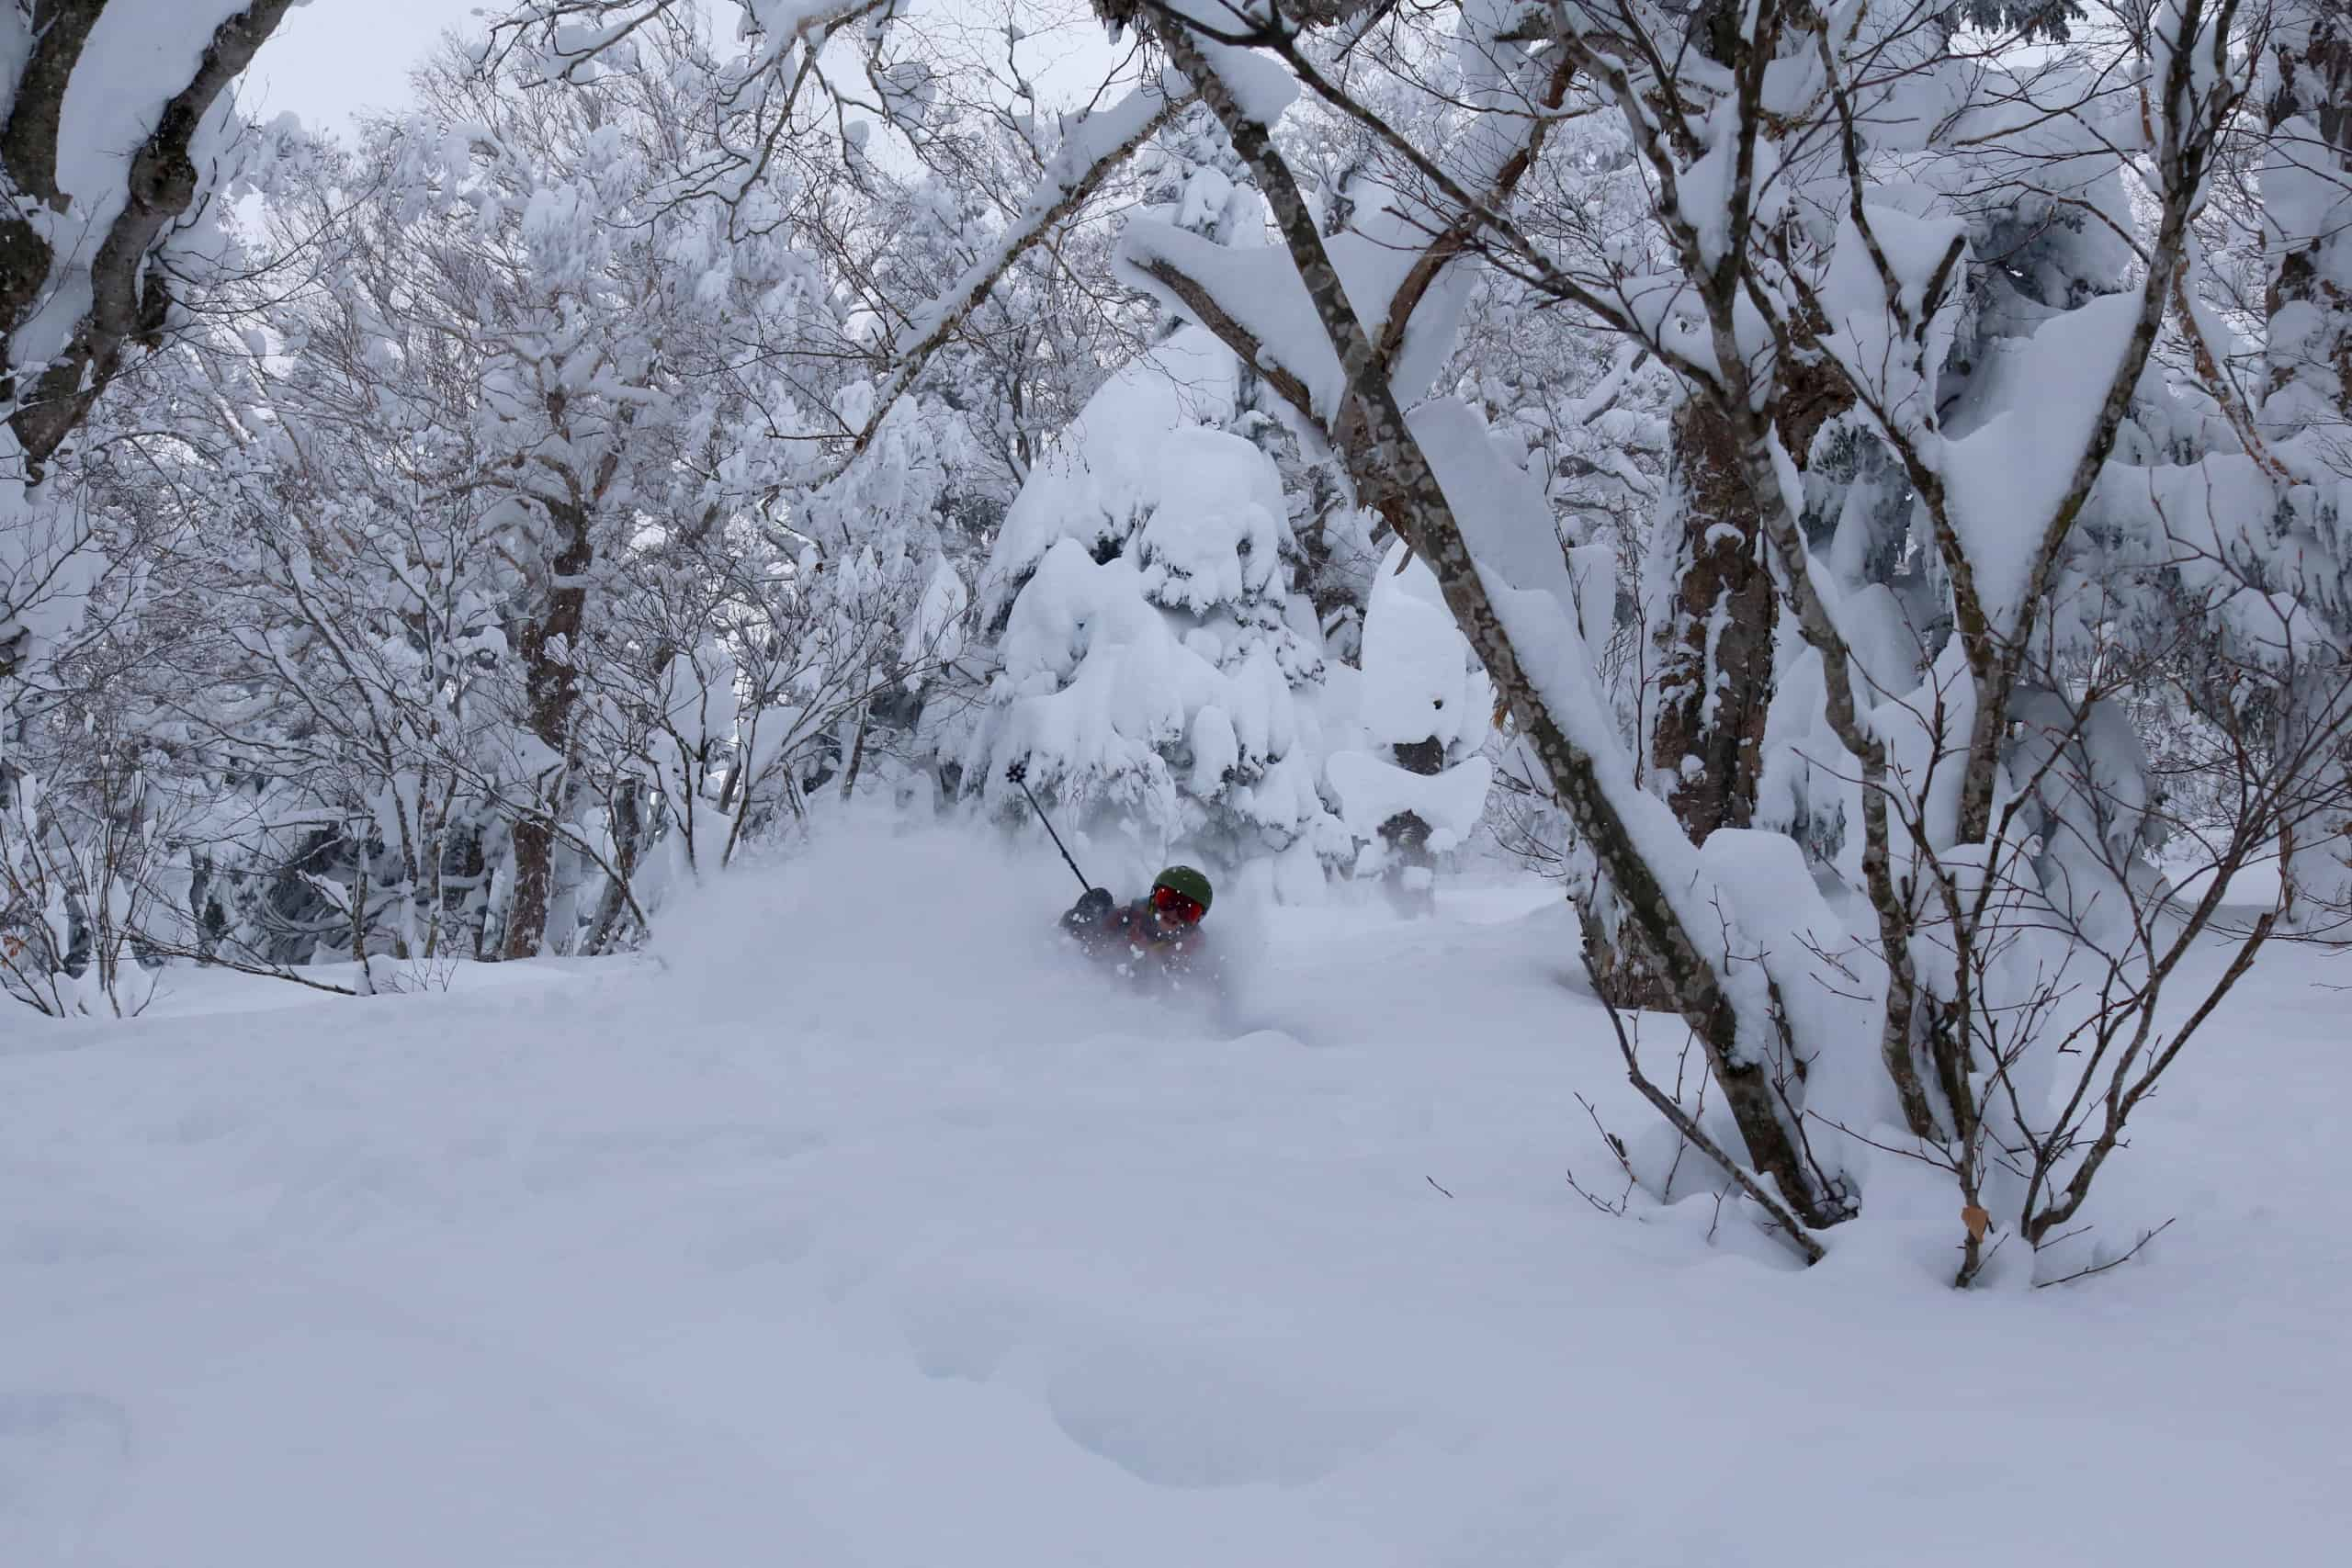 Destinations - Iwate Prefecture, One of Japan's Lesser-Known Regions For World-Class Snow